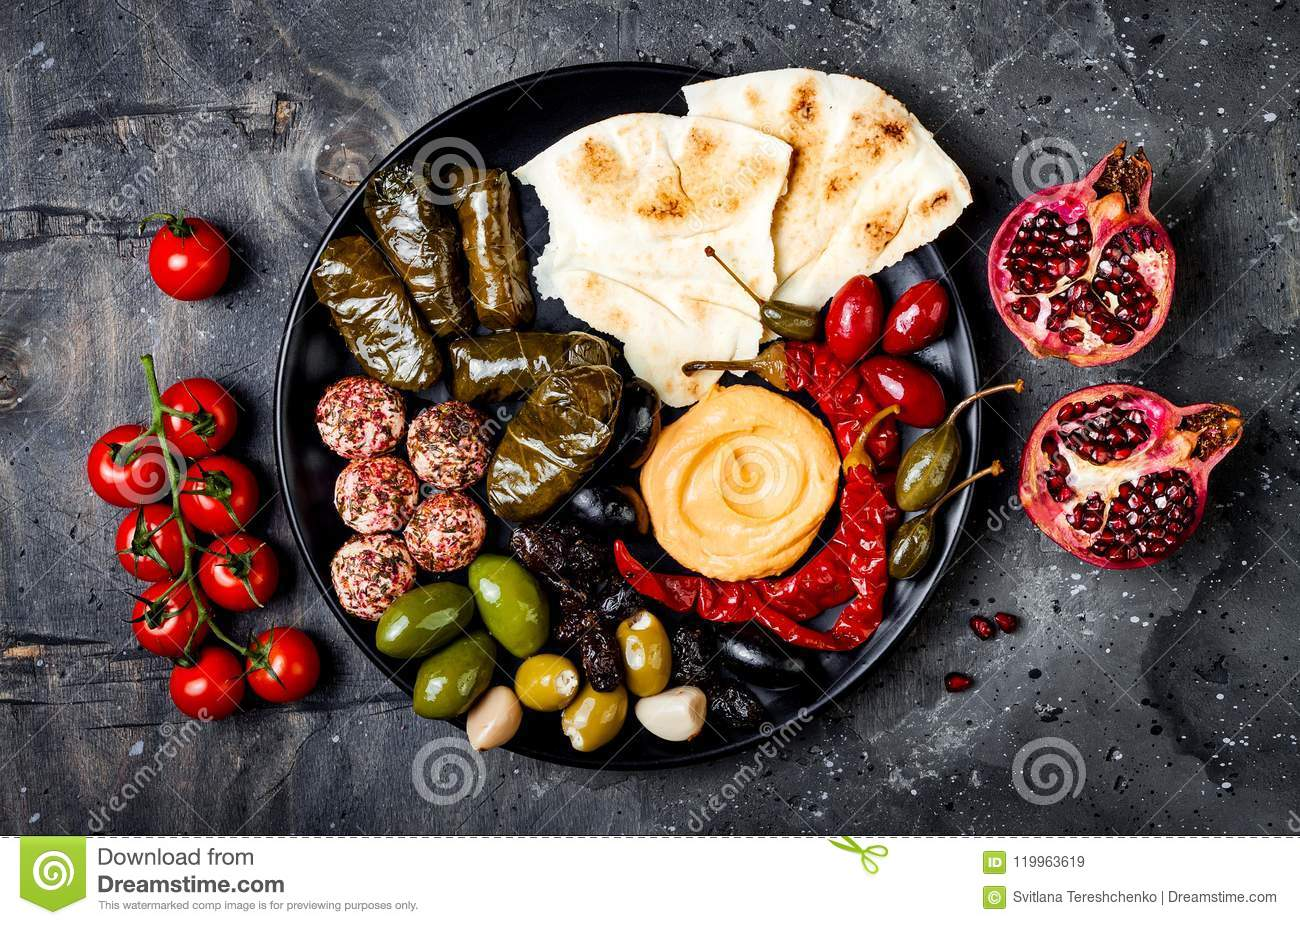 Arabic traditional cuisine. Middle Eastern meze platter with pita, olives, hummus, stuffed dolma, labneh cheese balls in spices.